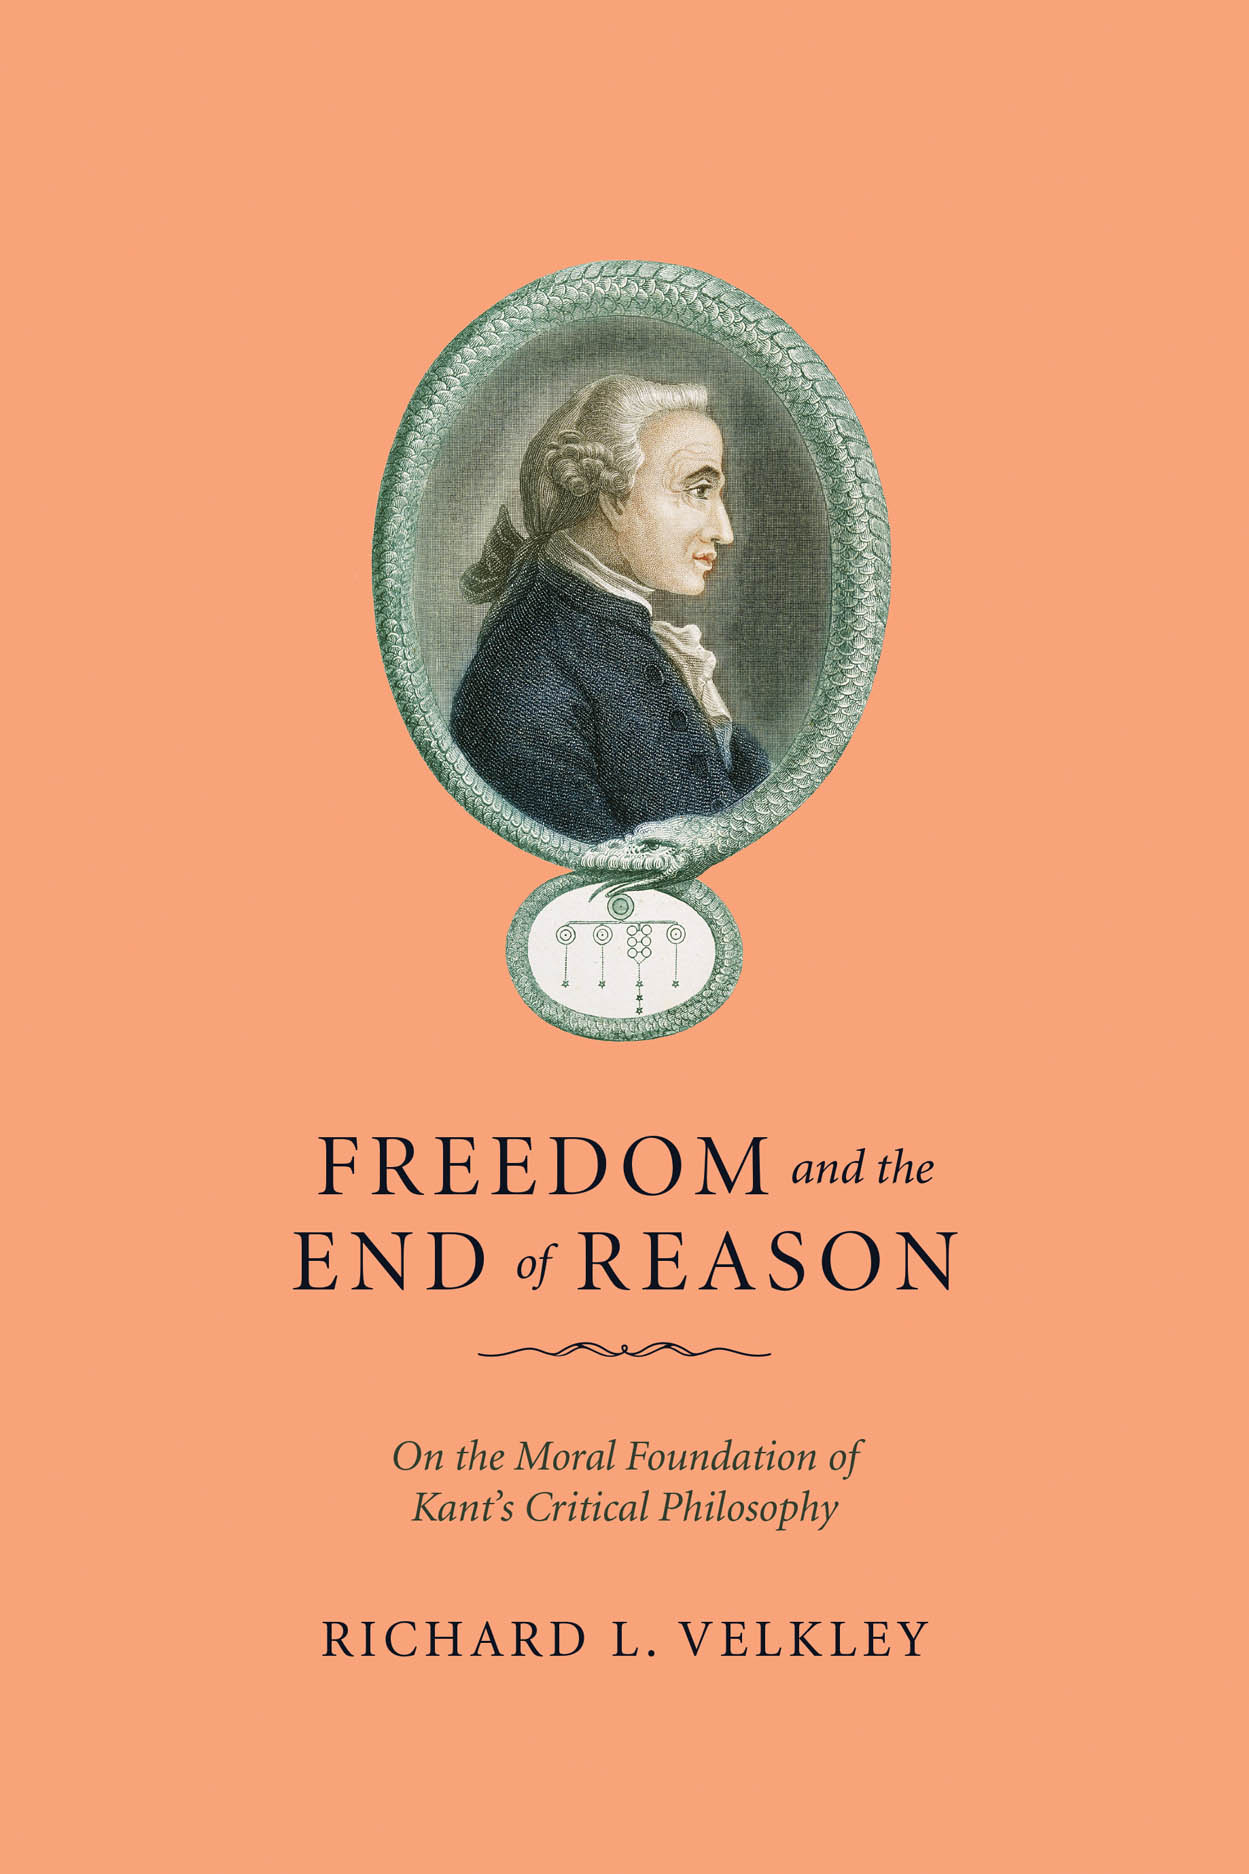 Freedom and the End of Reason: On the Moral Foundation of Kant's Critical Philosophy